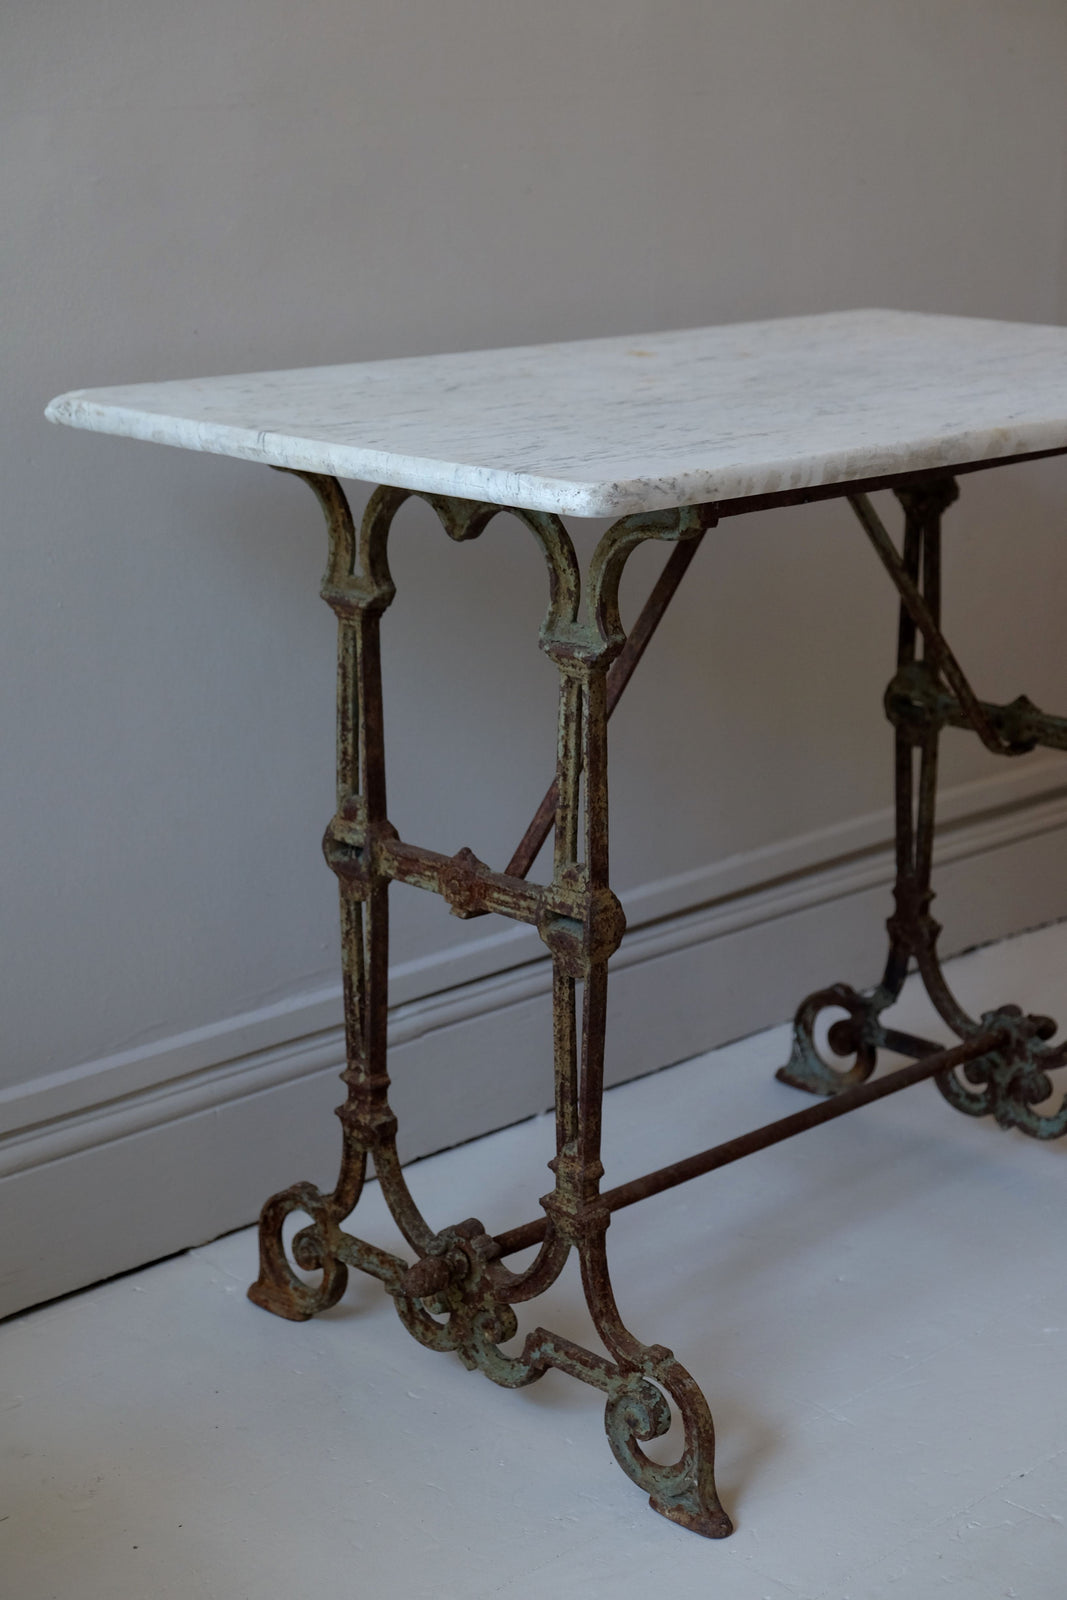 19th C. Iron Table Base with Period Marble Top